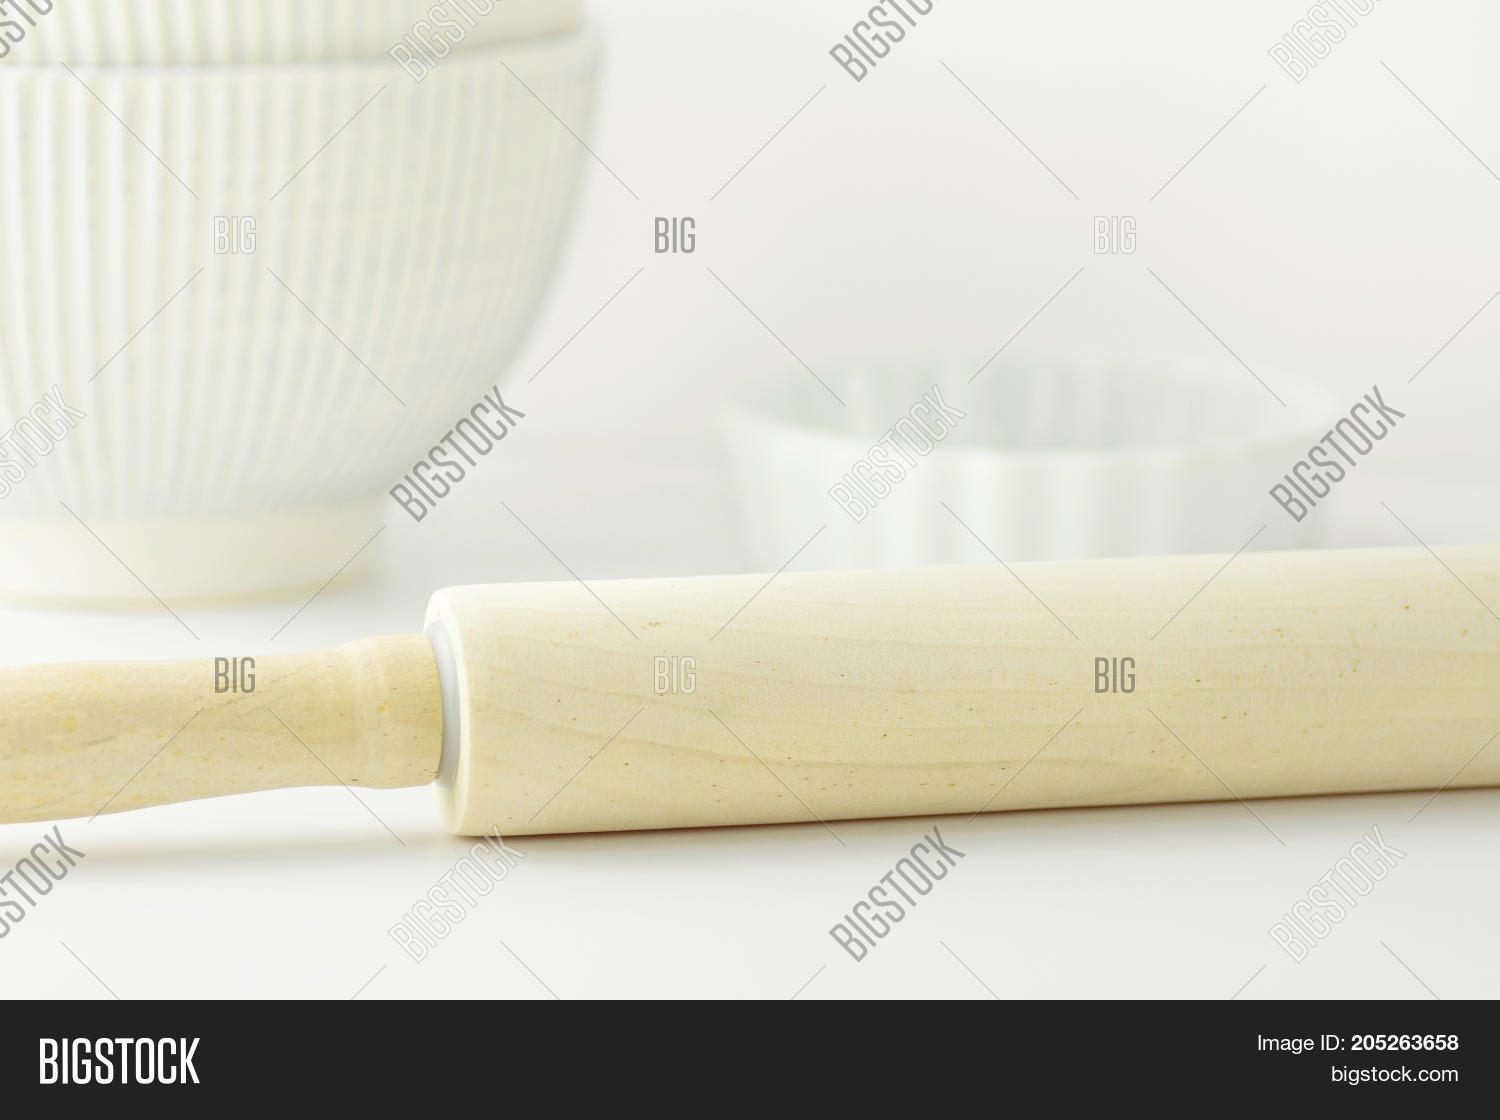 Wooden Rolling Pin Image Photo Free Trial Bigstock